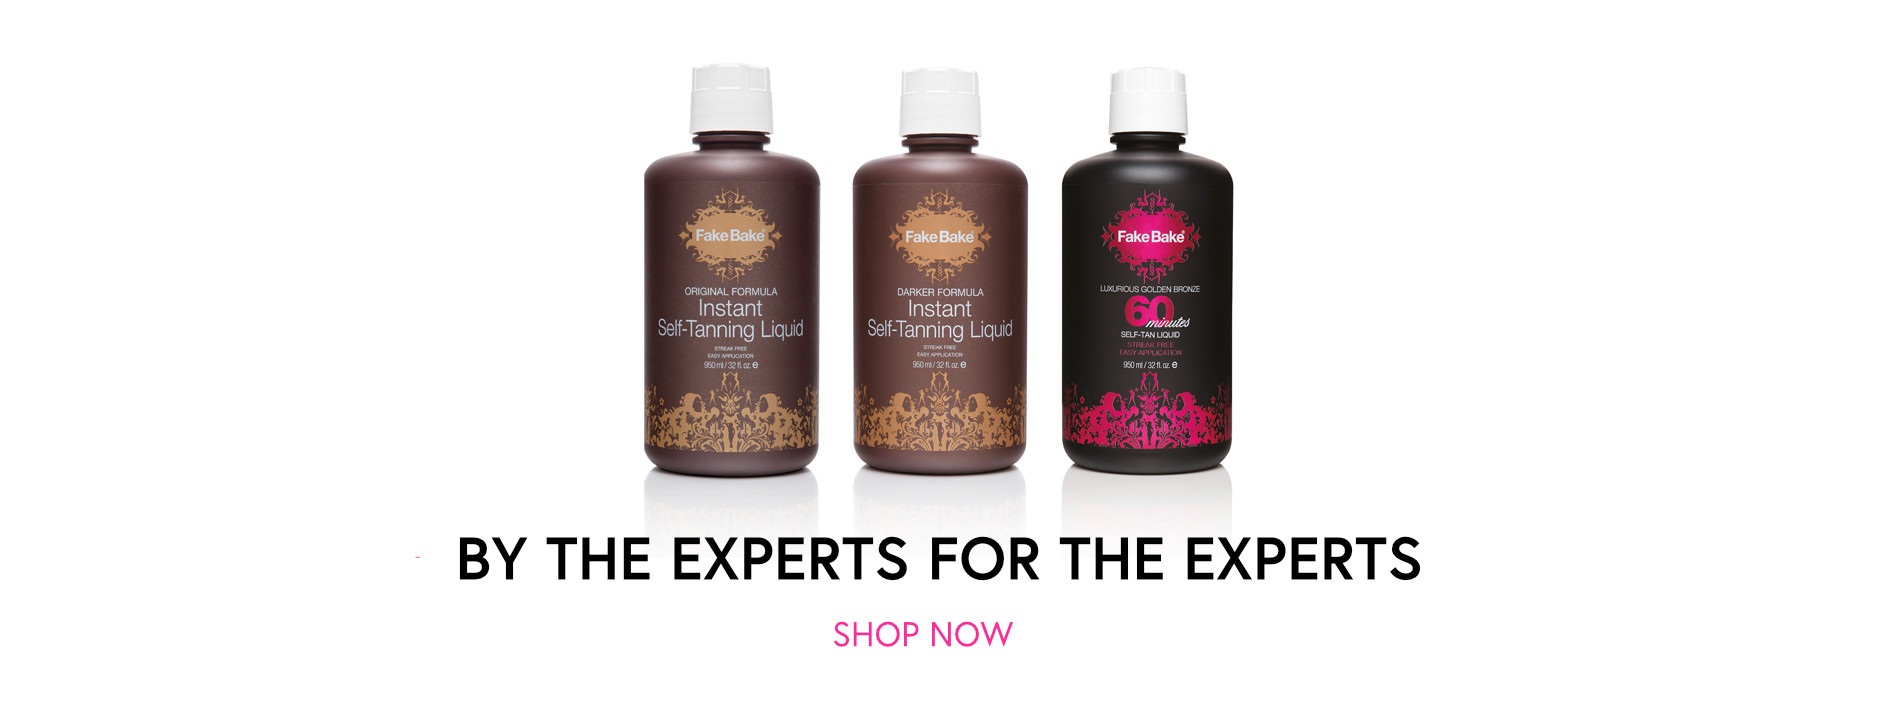 Fake-Bake-Expert-Products